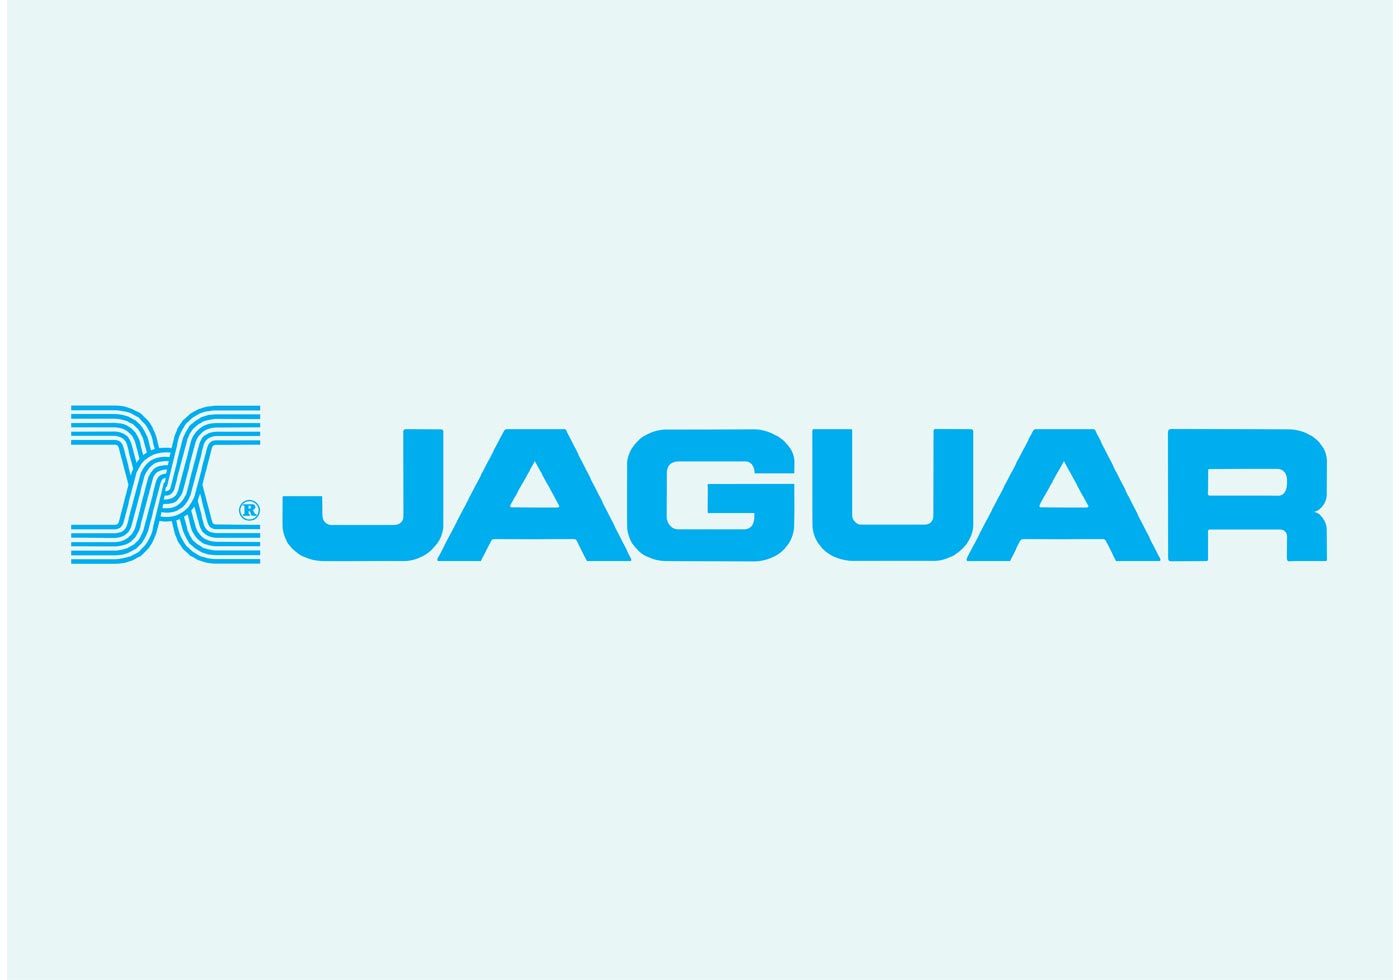 jaguar logo vector - photo #11